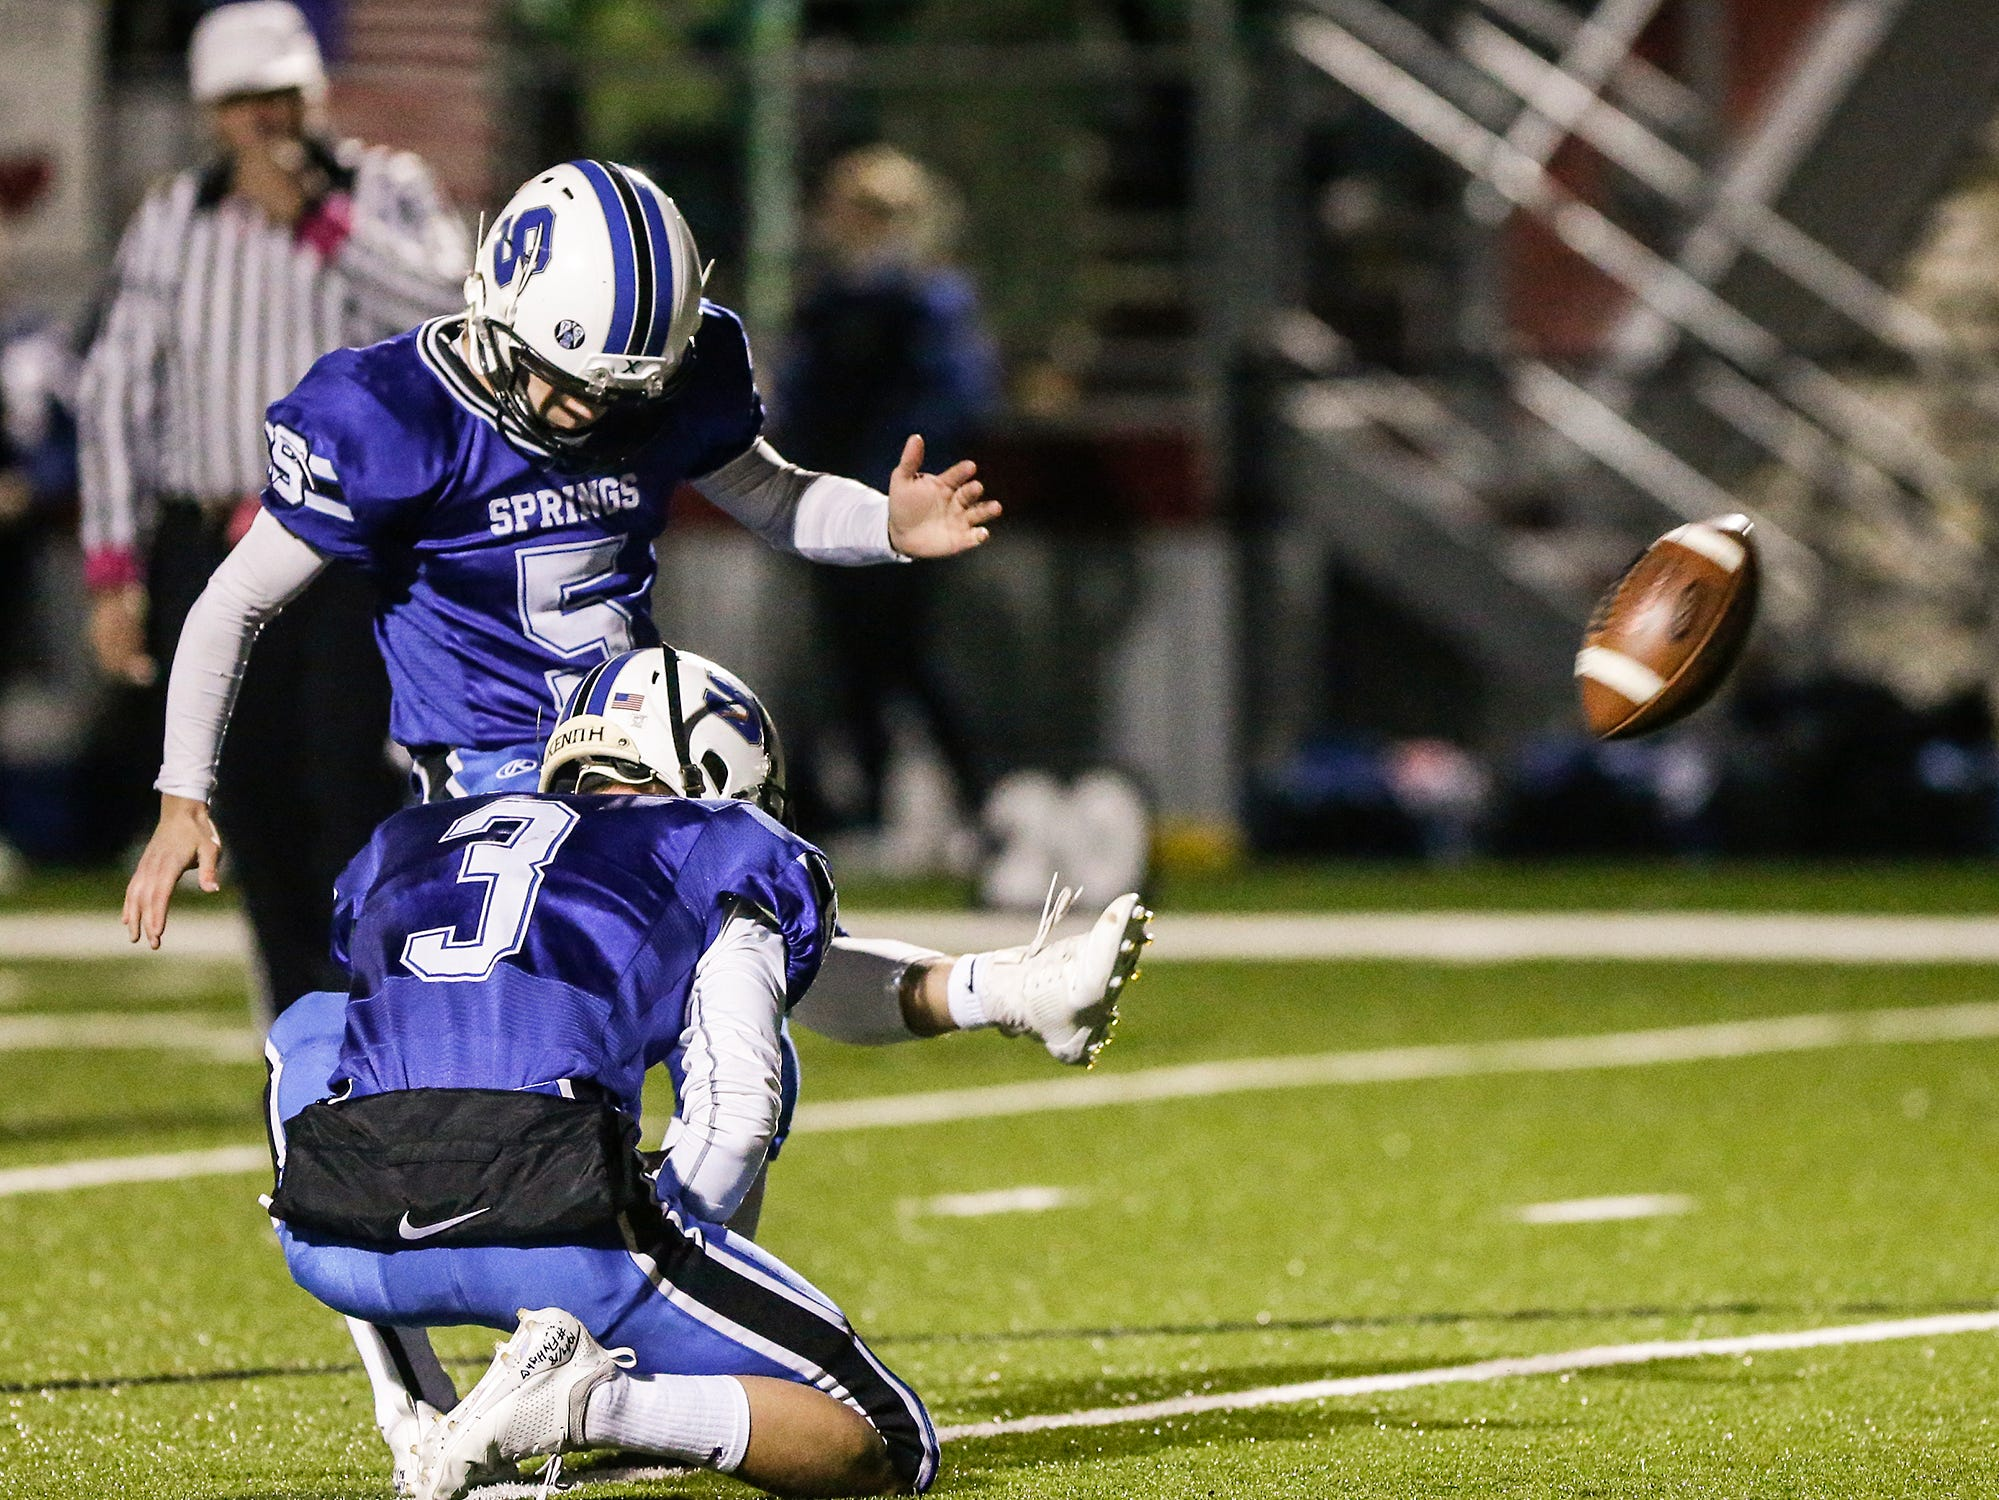 St. Mary's Springs Academy football's Levi Poss kicks this first quarter extra point against Dominican High School making the score 20-0  Friday, October 19, 2018 during their game played in Lomira, Wisconsin. Springs won the level 1 playoff game 62-13 Doug Raflik/USA TODAY NETWORK-Wisconsin